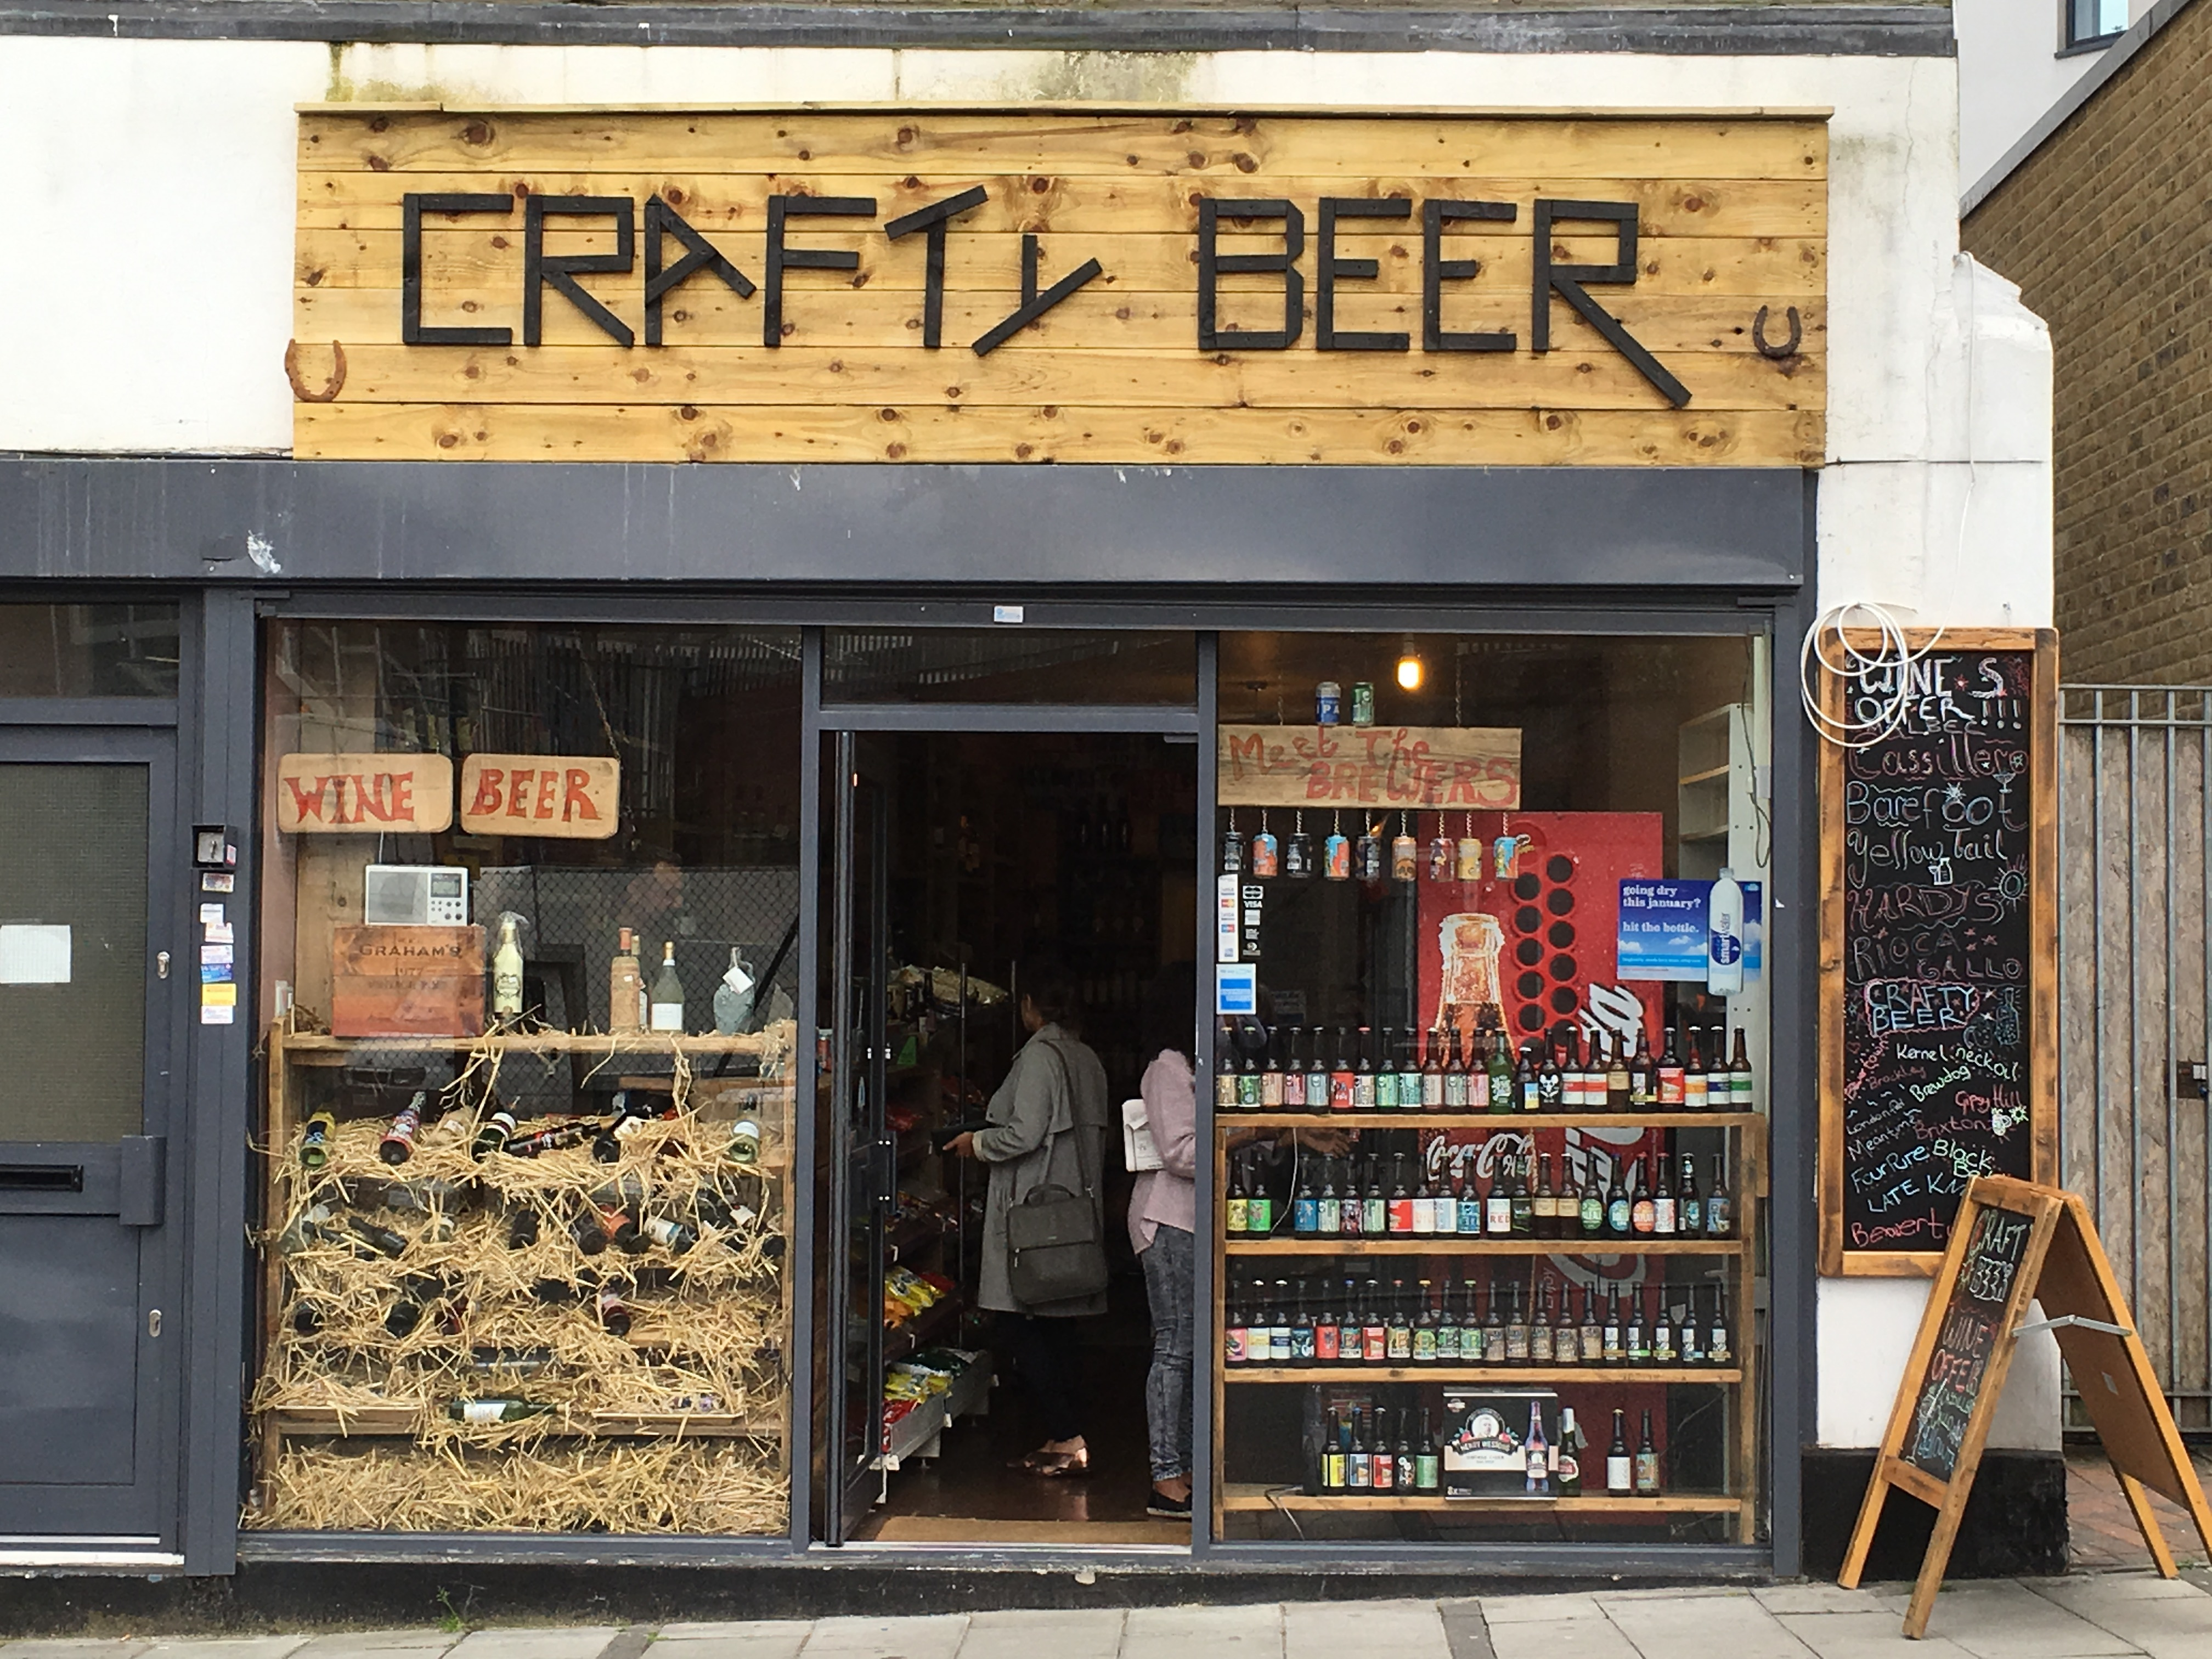 Crafty beer closed permanently shops se23 forum for Craft beer online shop